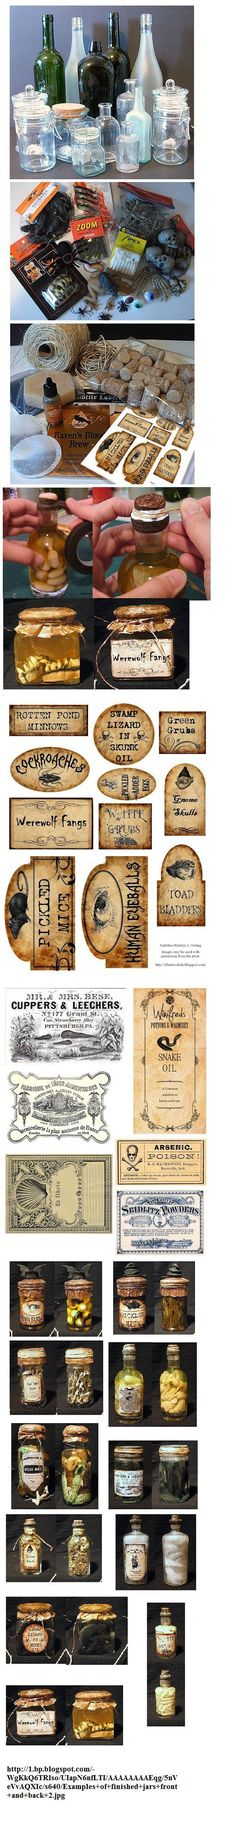 examples of apothecary jars & labels Halloween decor Halloween Prop, Casa Halloween, Theme Halloween, Halloween 2016, Halloween Projects, Diy Halloween Decorations, Holidays Halloween, Happy Halloween, Halloween Forum